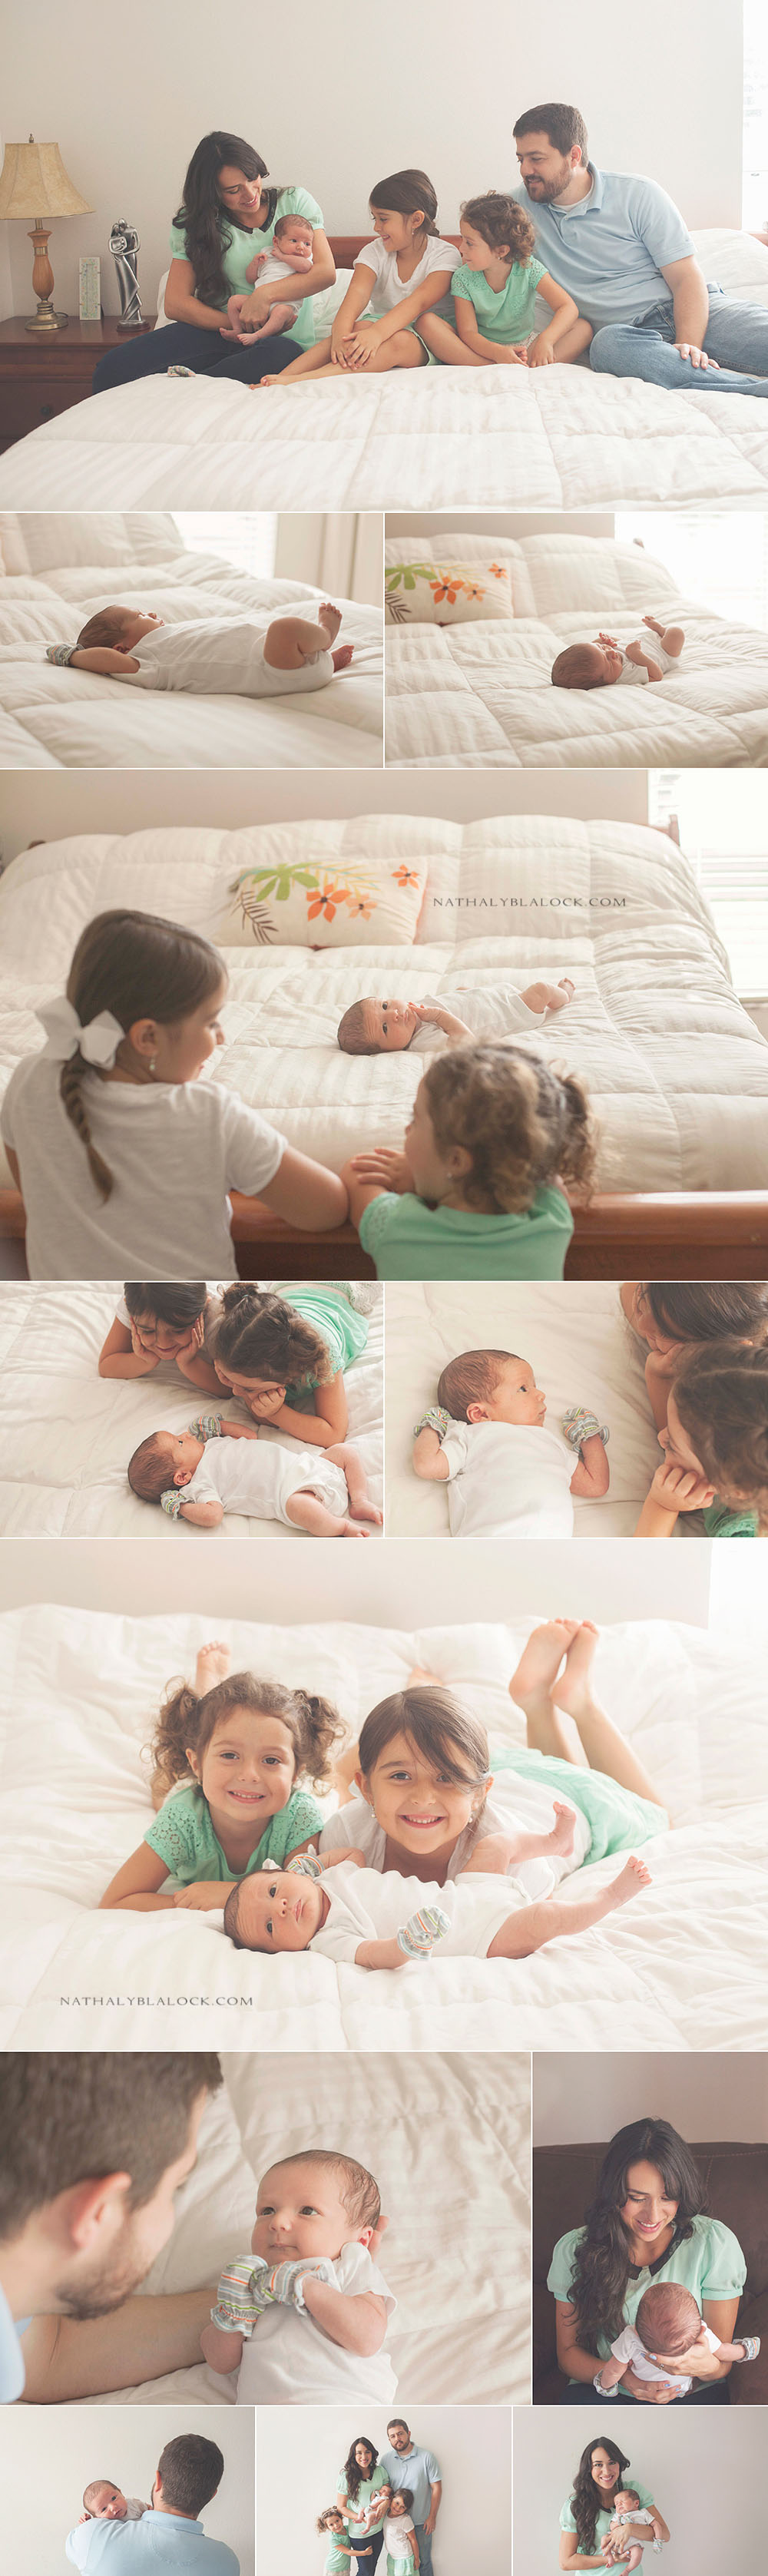 Viera-Family-Lifestyle-Newbornweb